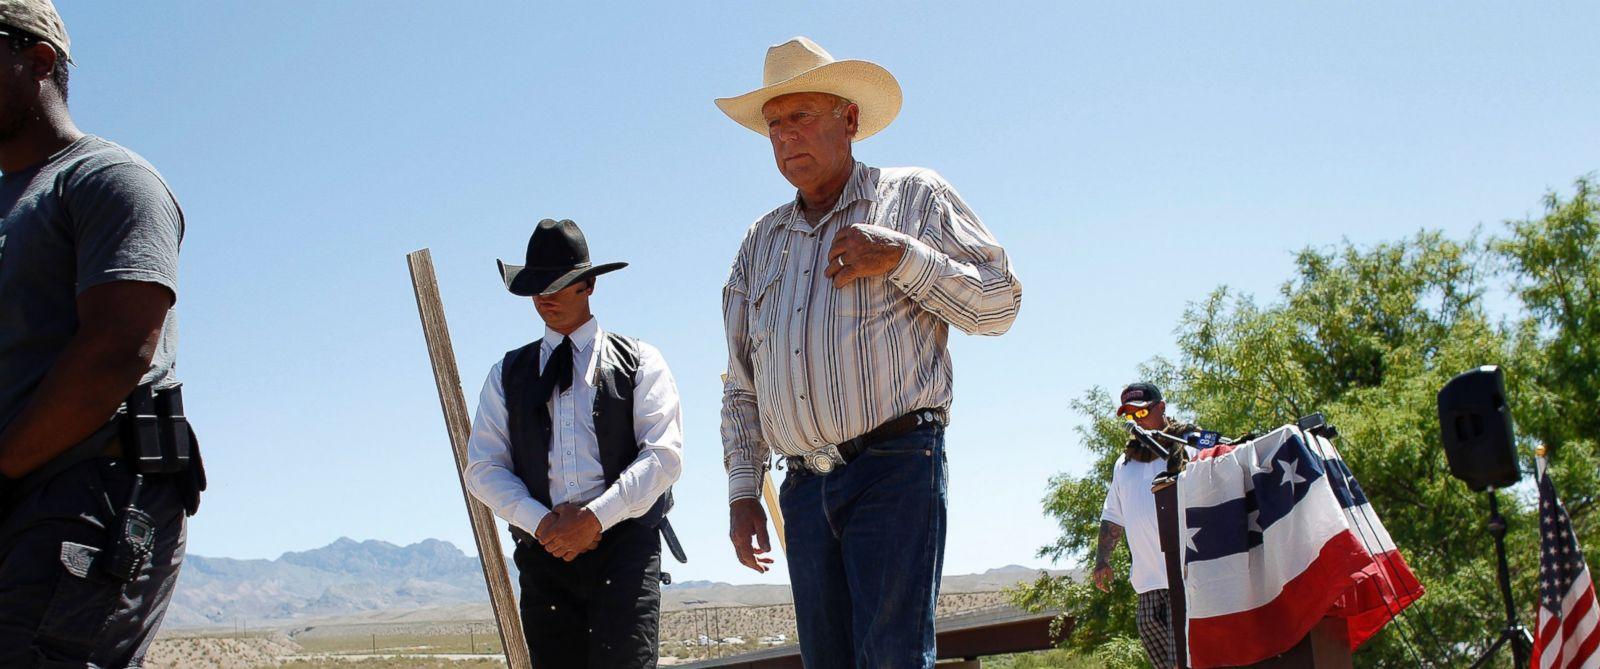 PHOTO: Rancher Cliven Bundy, center, walks off stage after speaking at a news conference near Bunkerville, Nev., April 24, 2014.